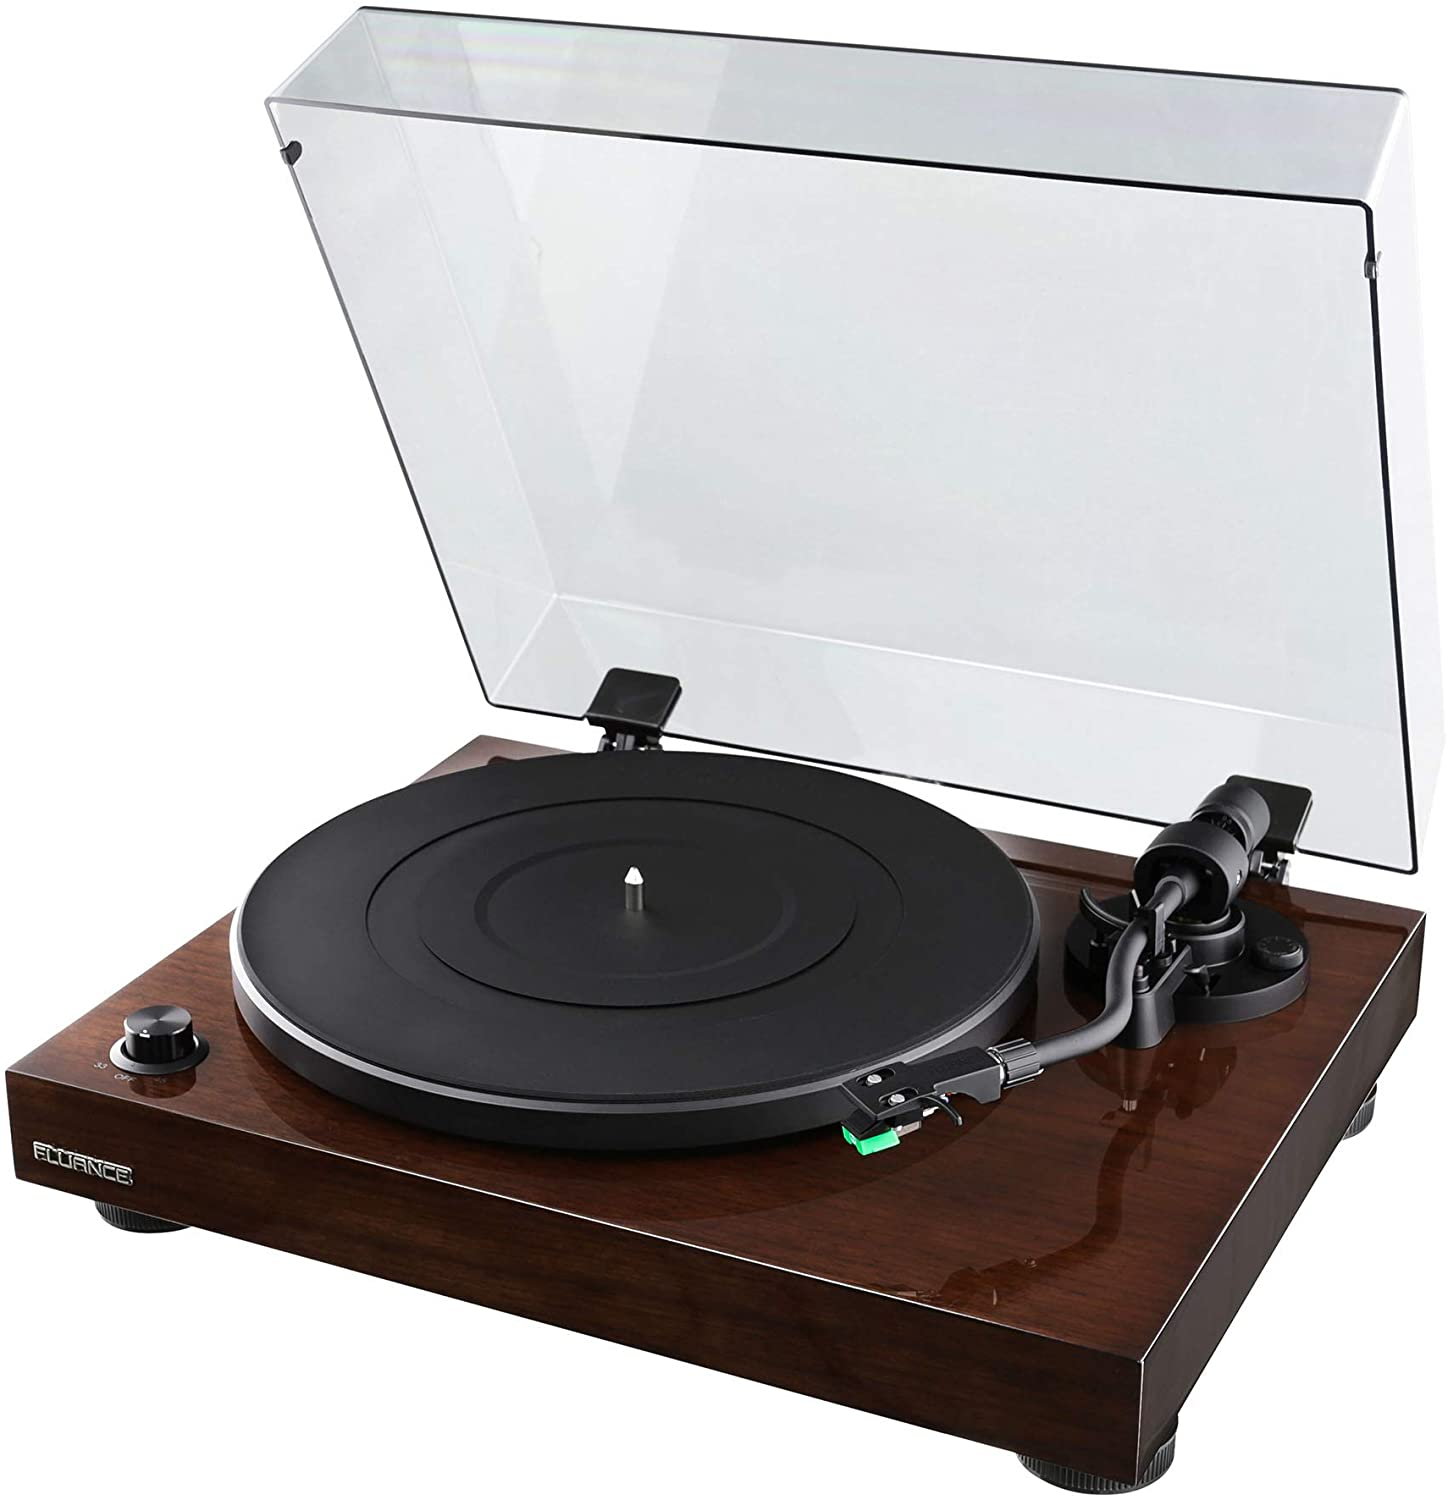 Fluance bluetooth record player, best Christmas gifts